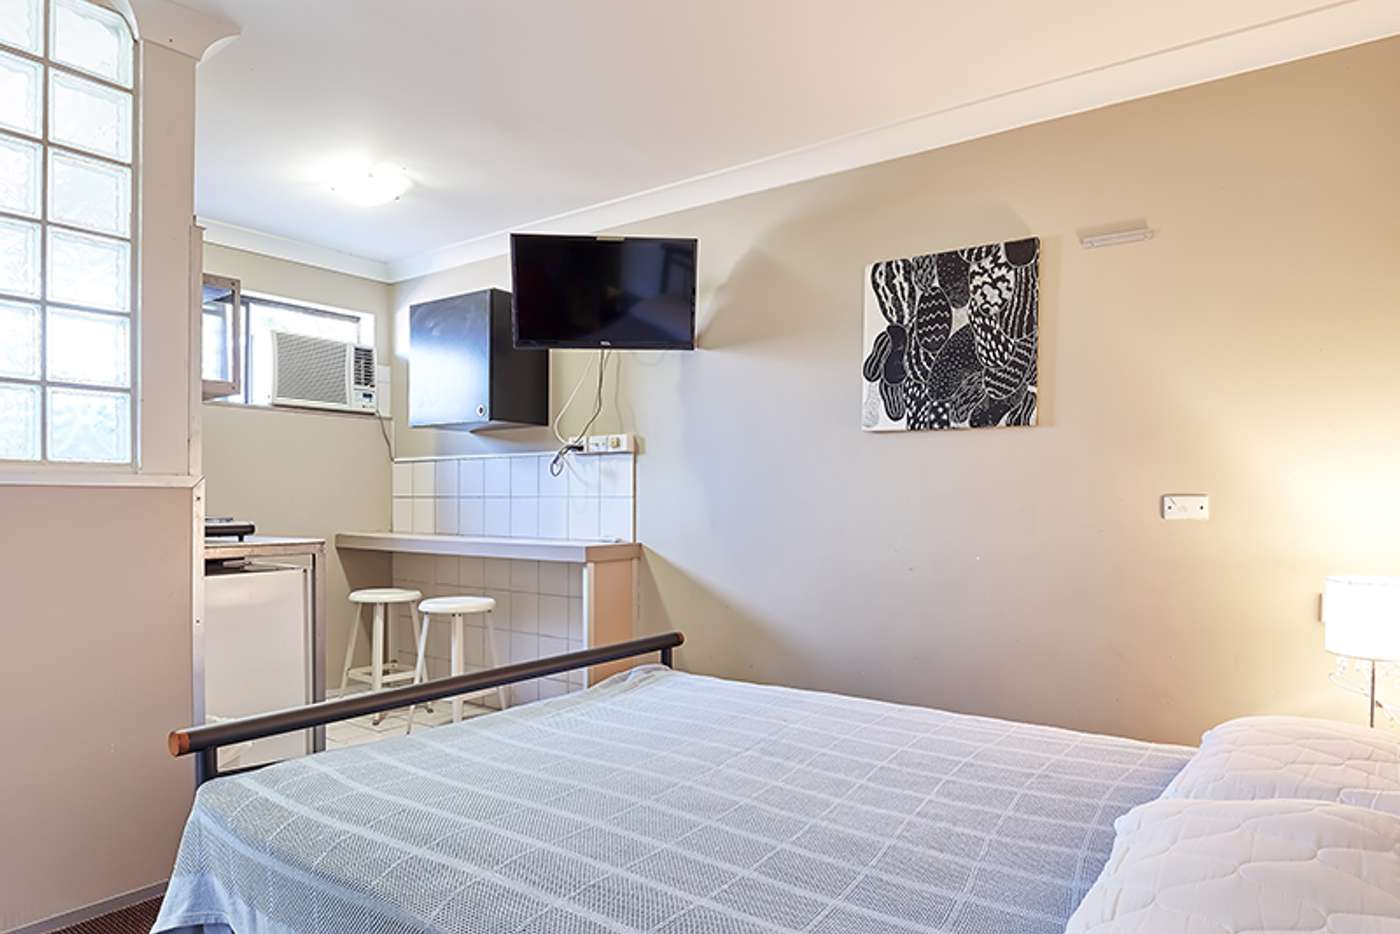 Main view of Homely unit listing, 305/204 Ipswich Road, Woolloongabba QLD 4102